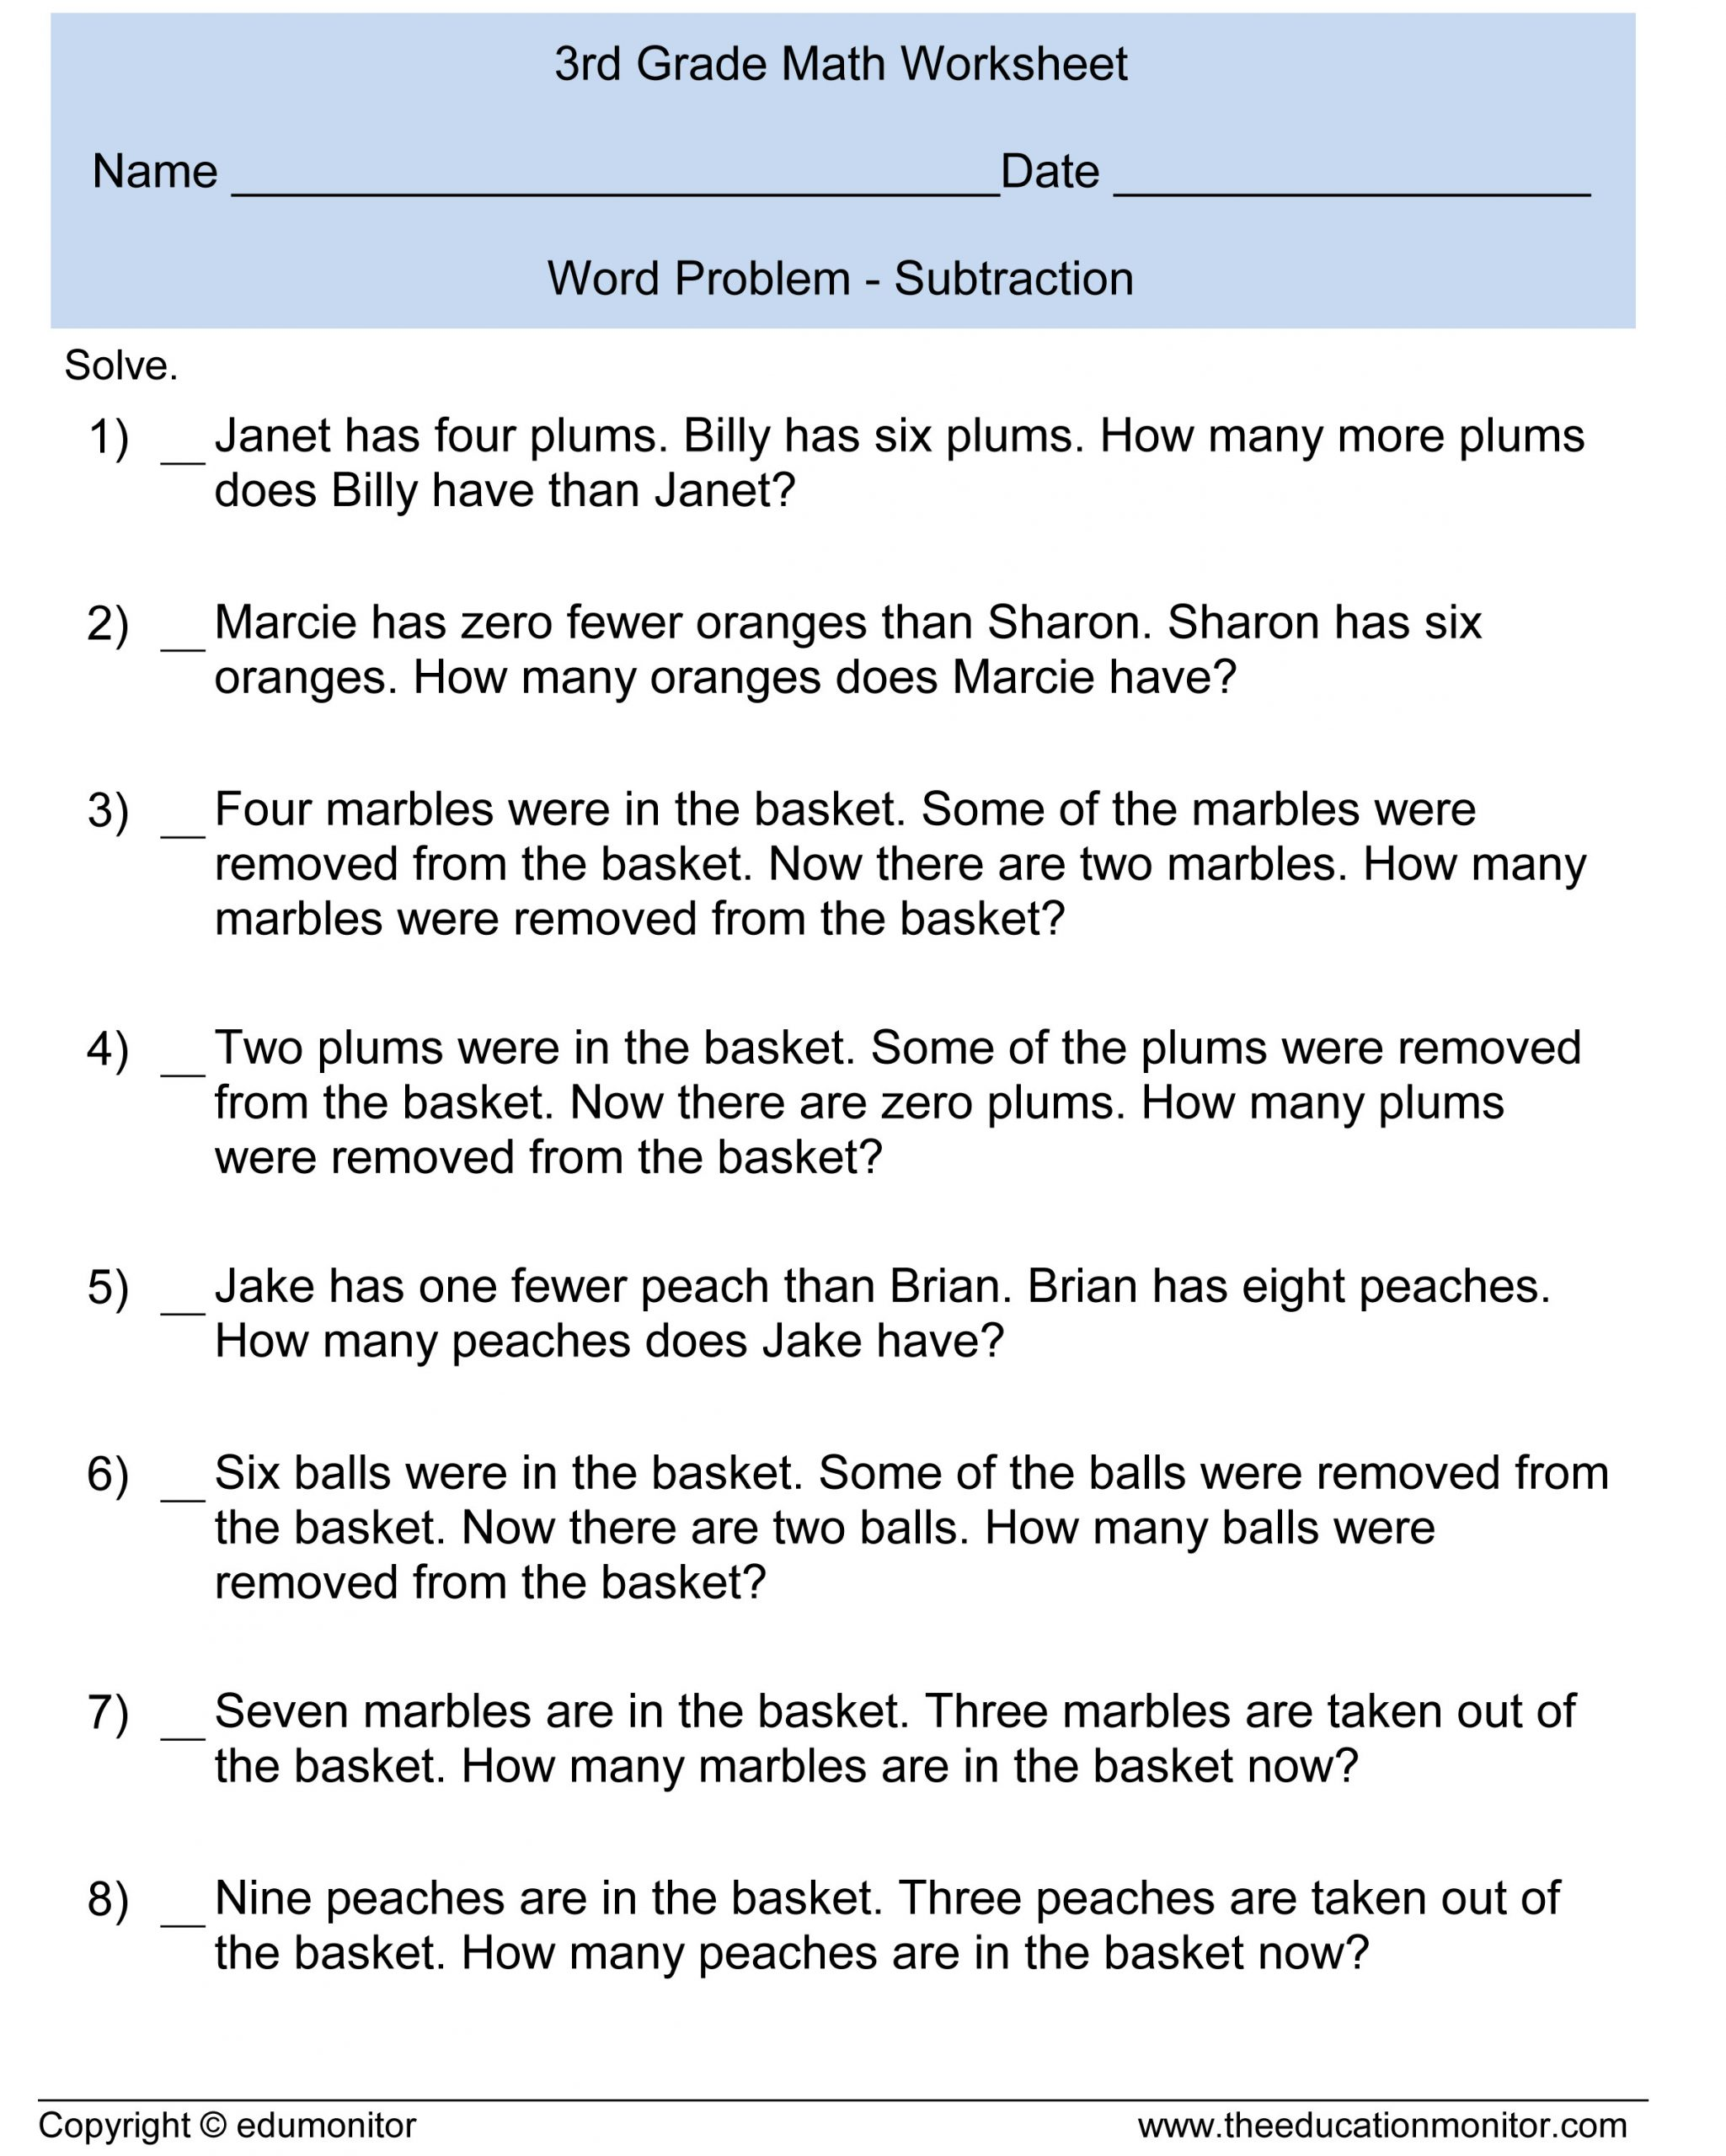 Third Grade Fraction Word Problems Subtraction Word Problems 3rd Grade for Your Kids